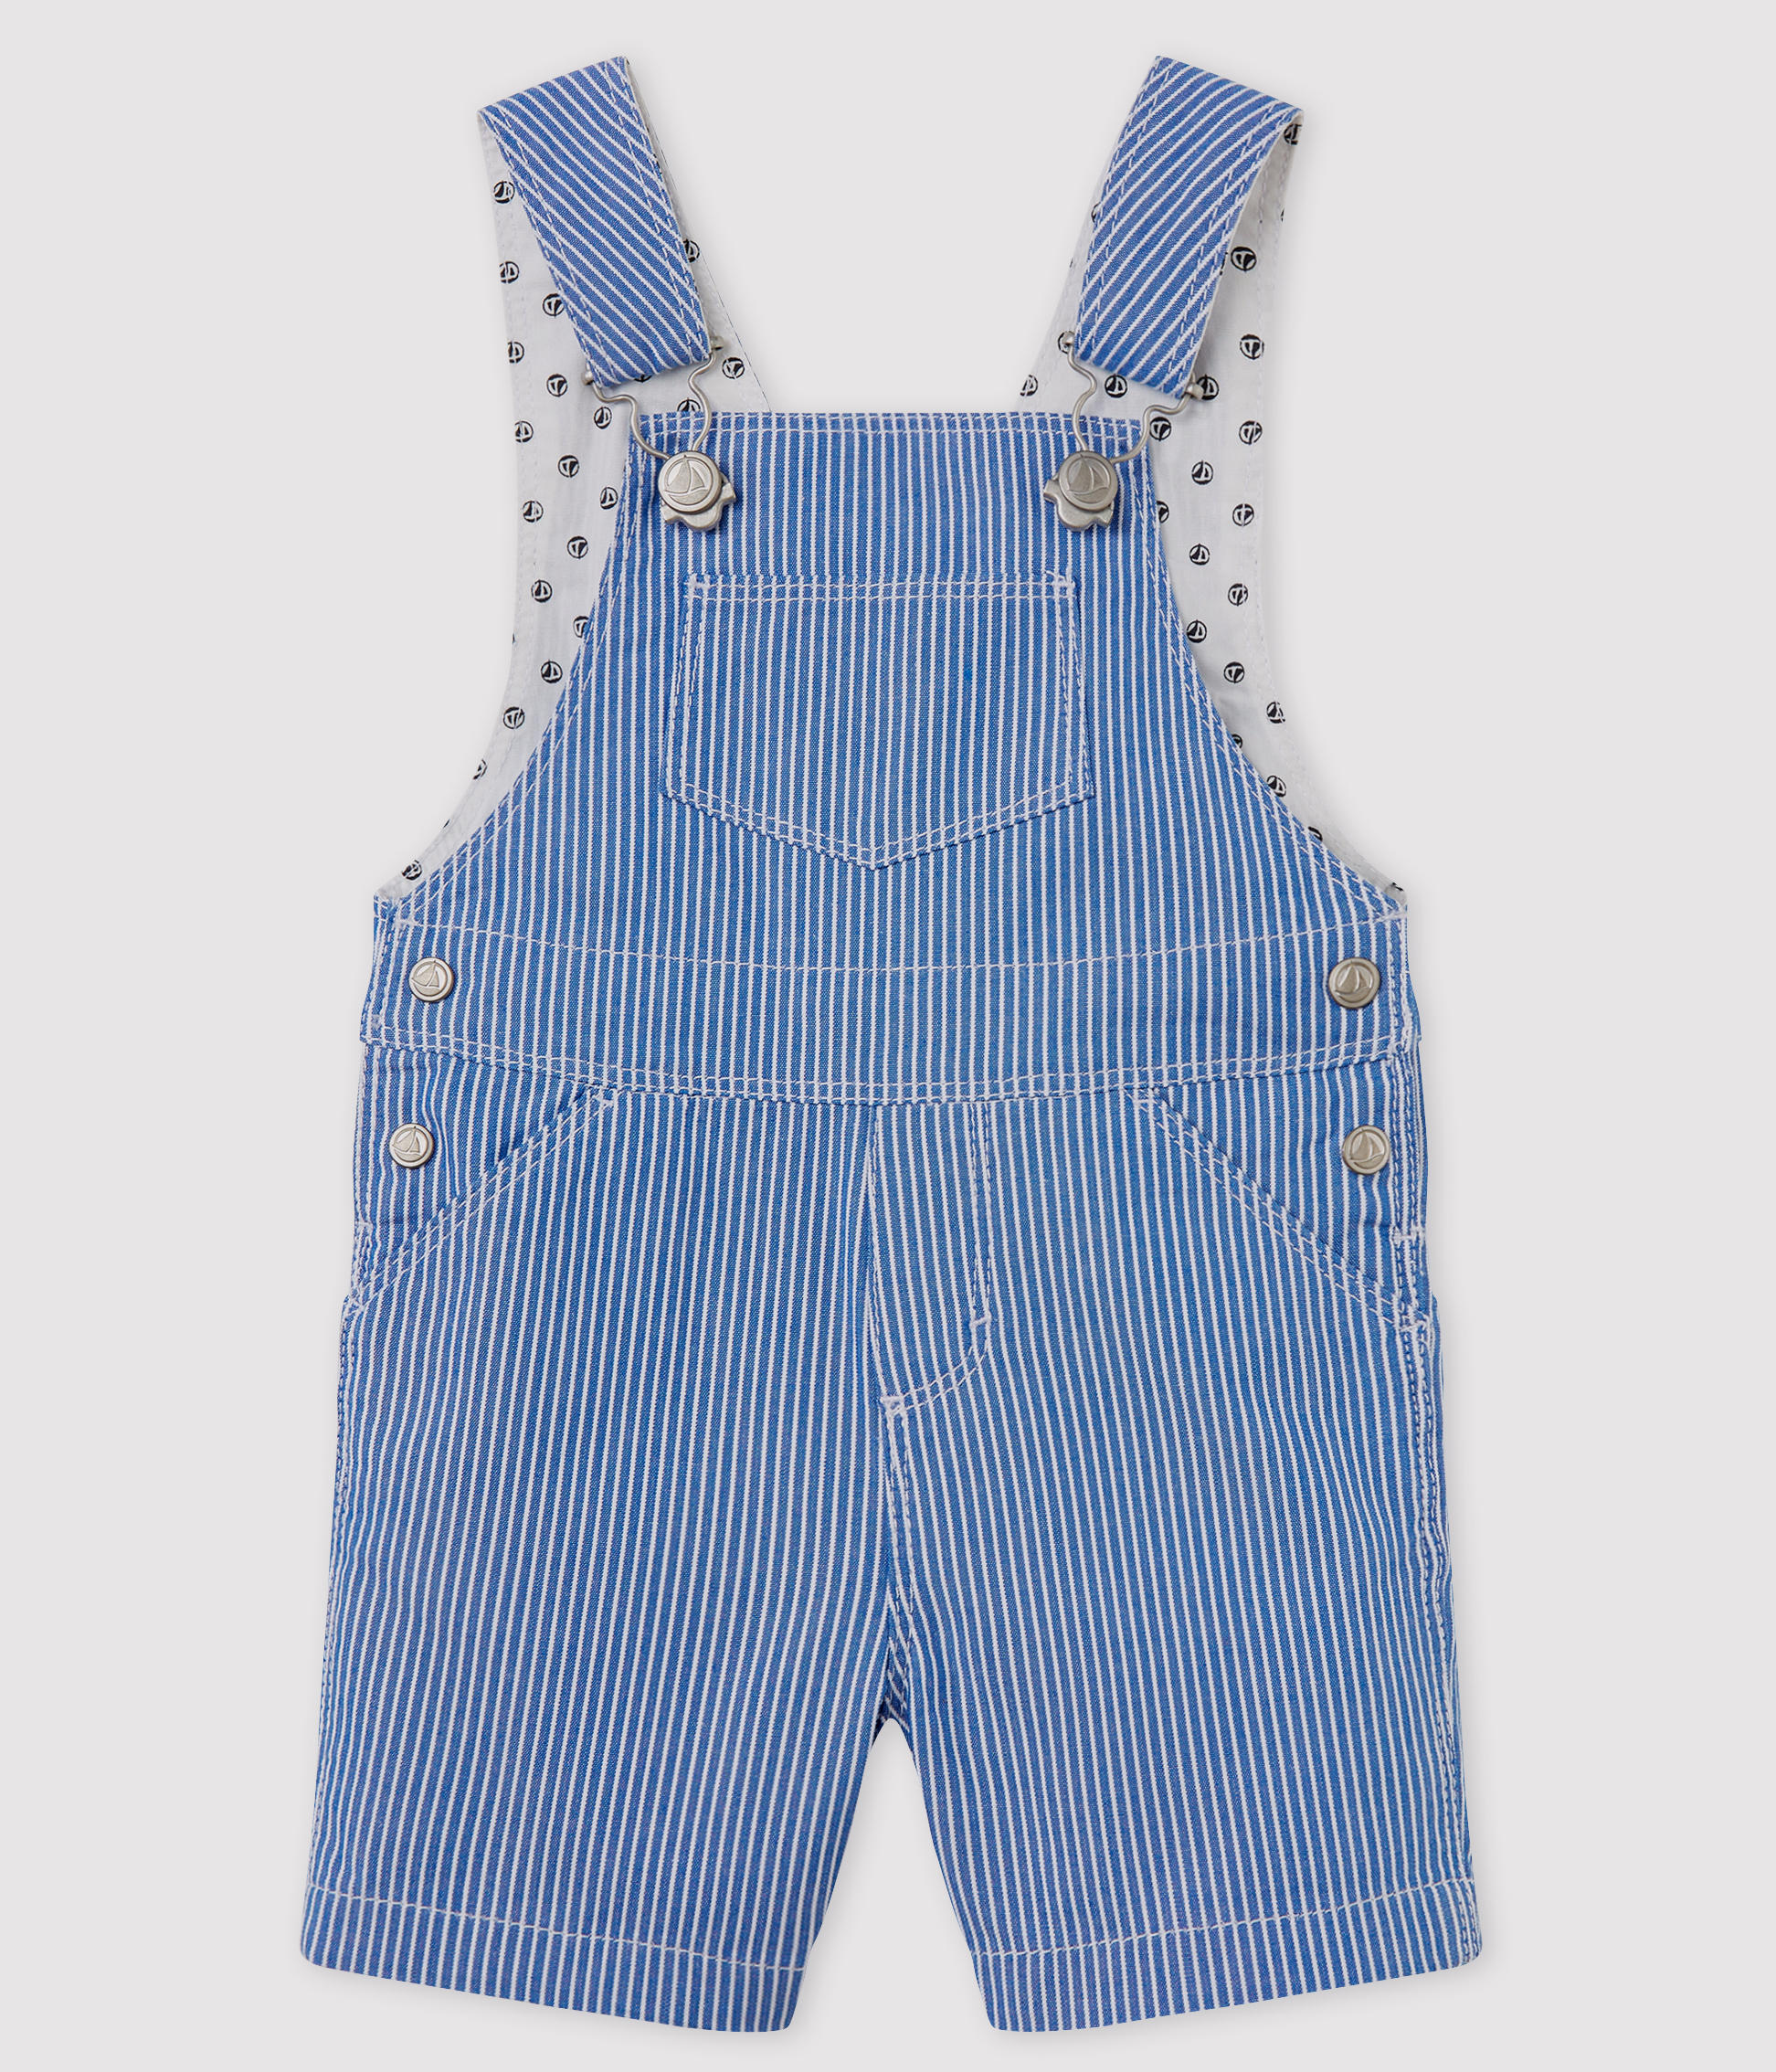 Unisex Baby's Striped Short Dungarees